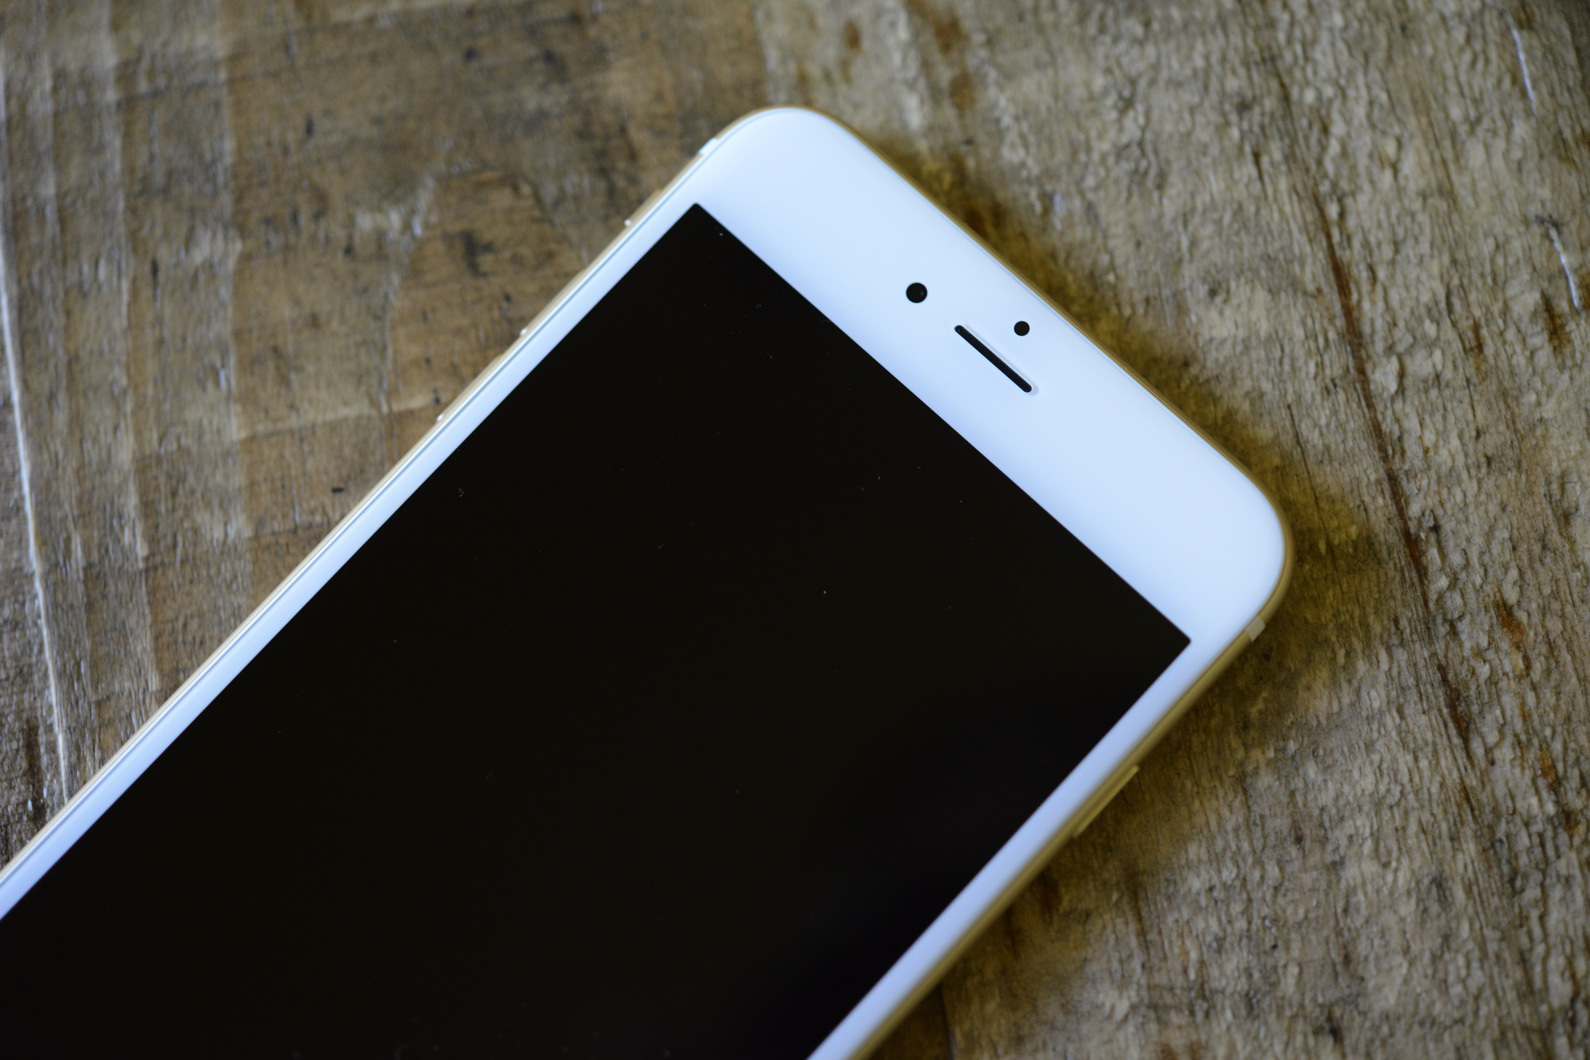 big_iphone6plus-hands-on_2695.jpg